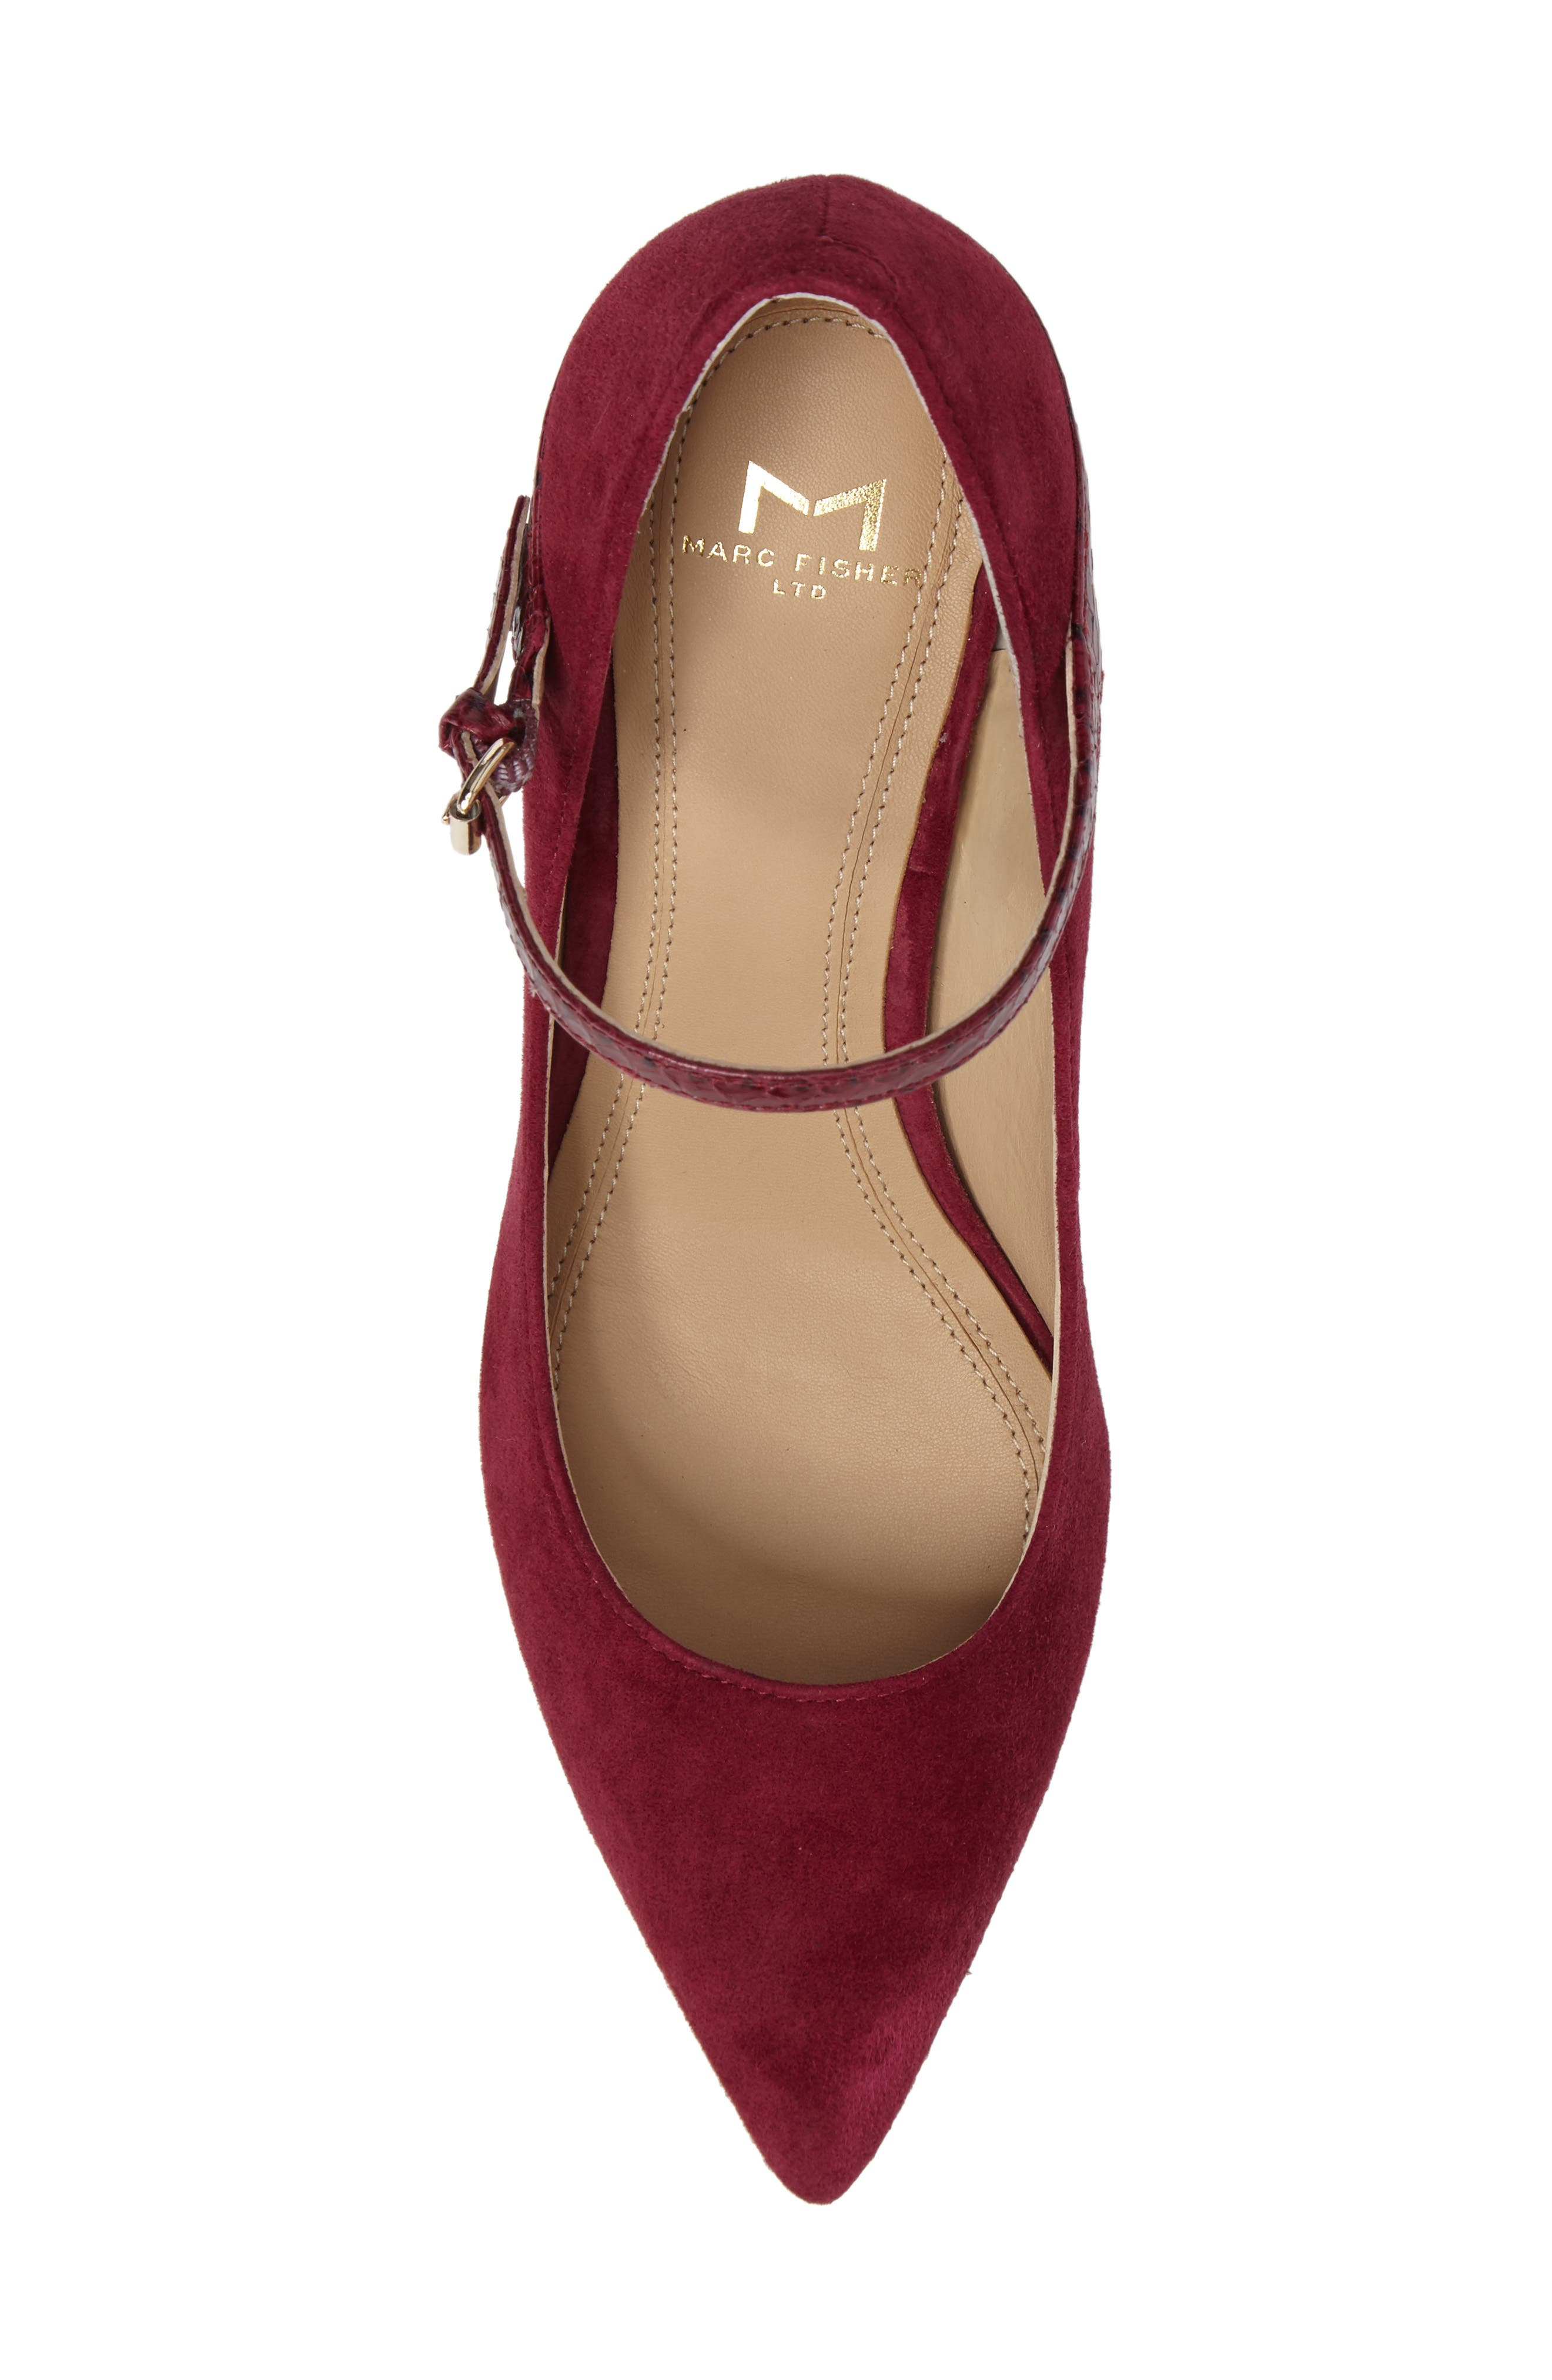 Zullys Snake Embossed Mary Jane Pump,                             Alternate thumbnail 5, color,                             Berry/ Berry Leather